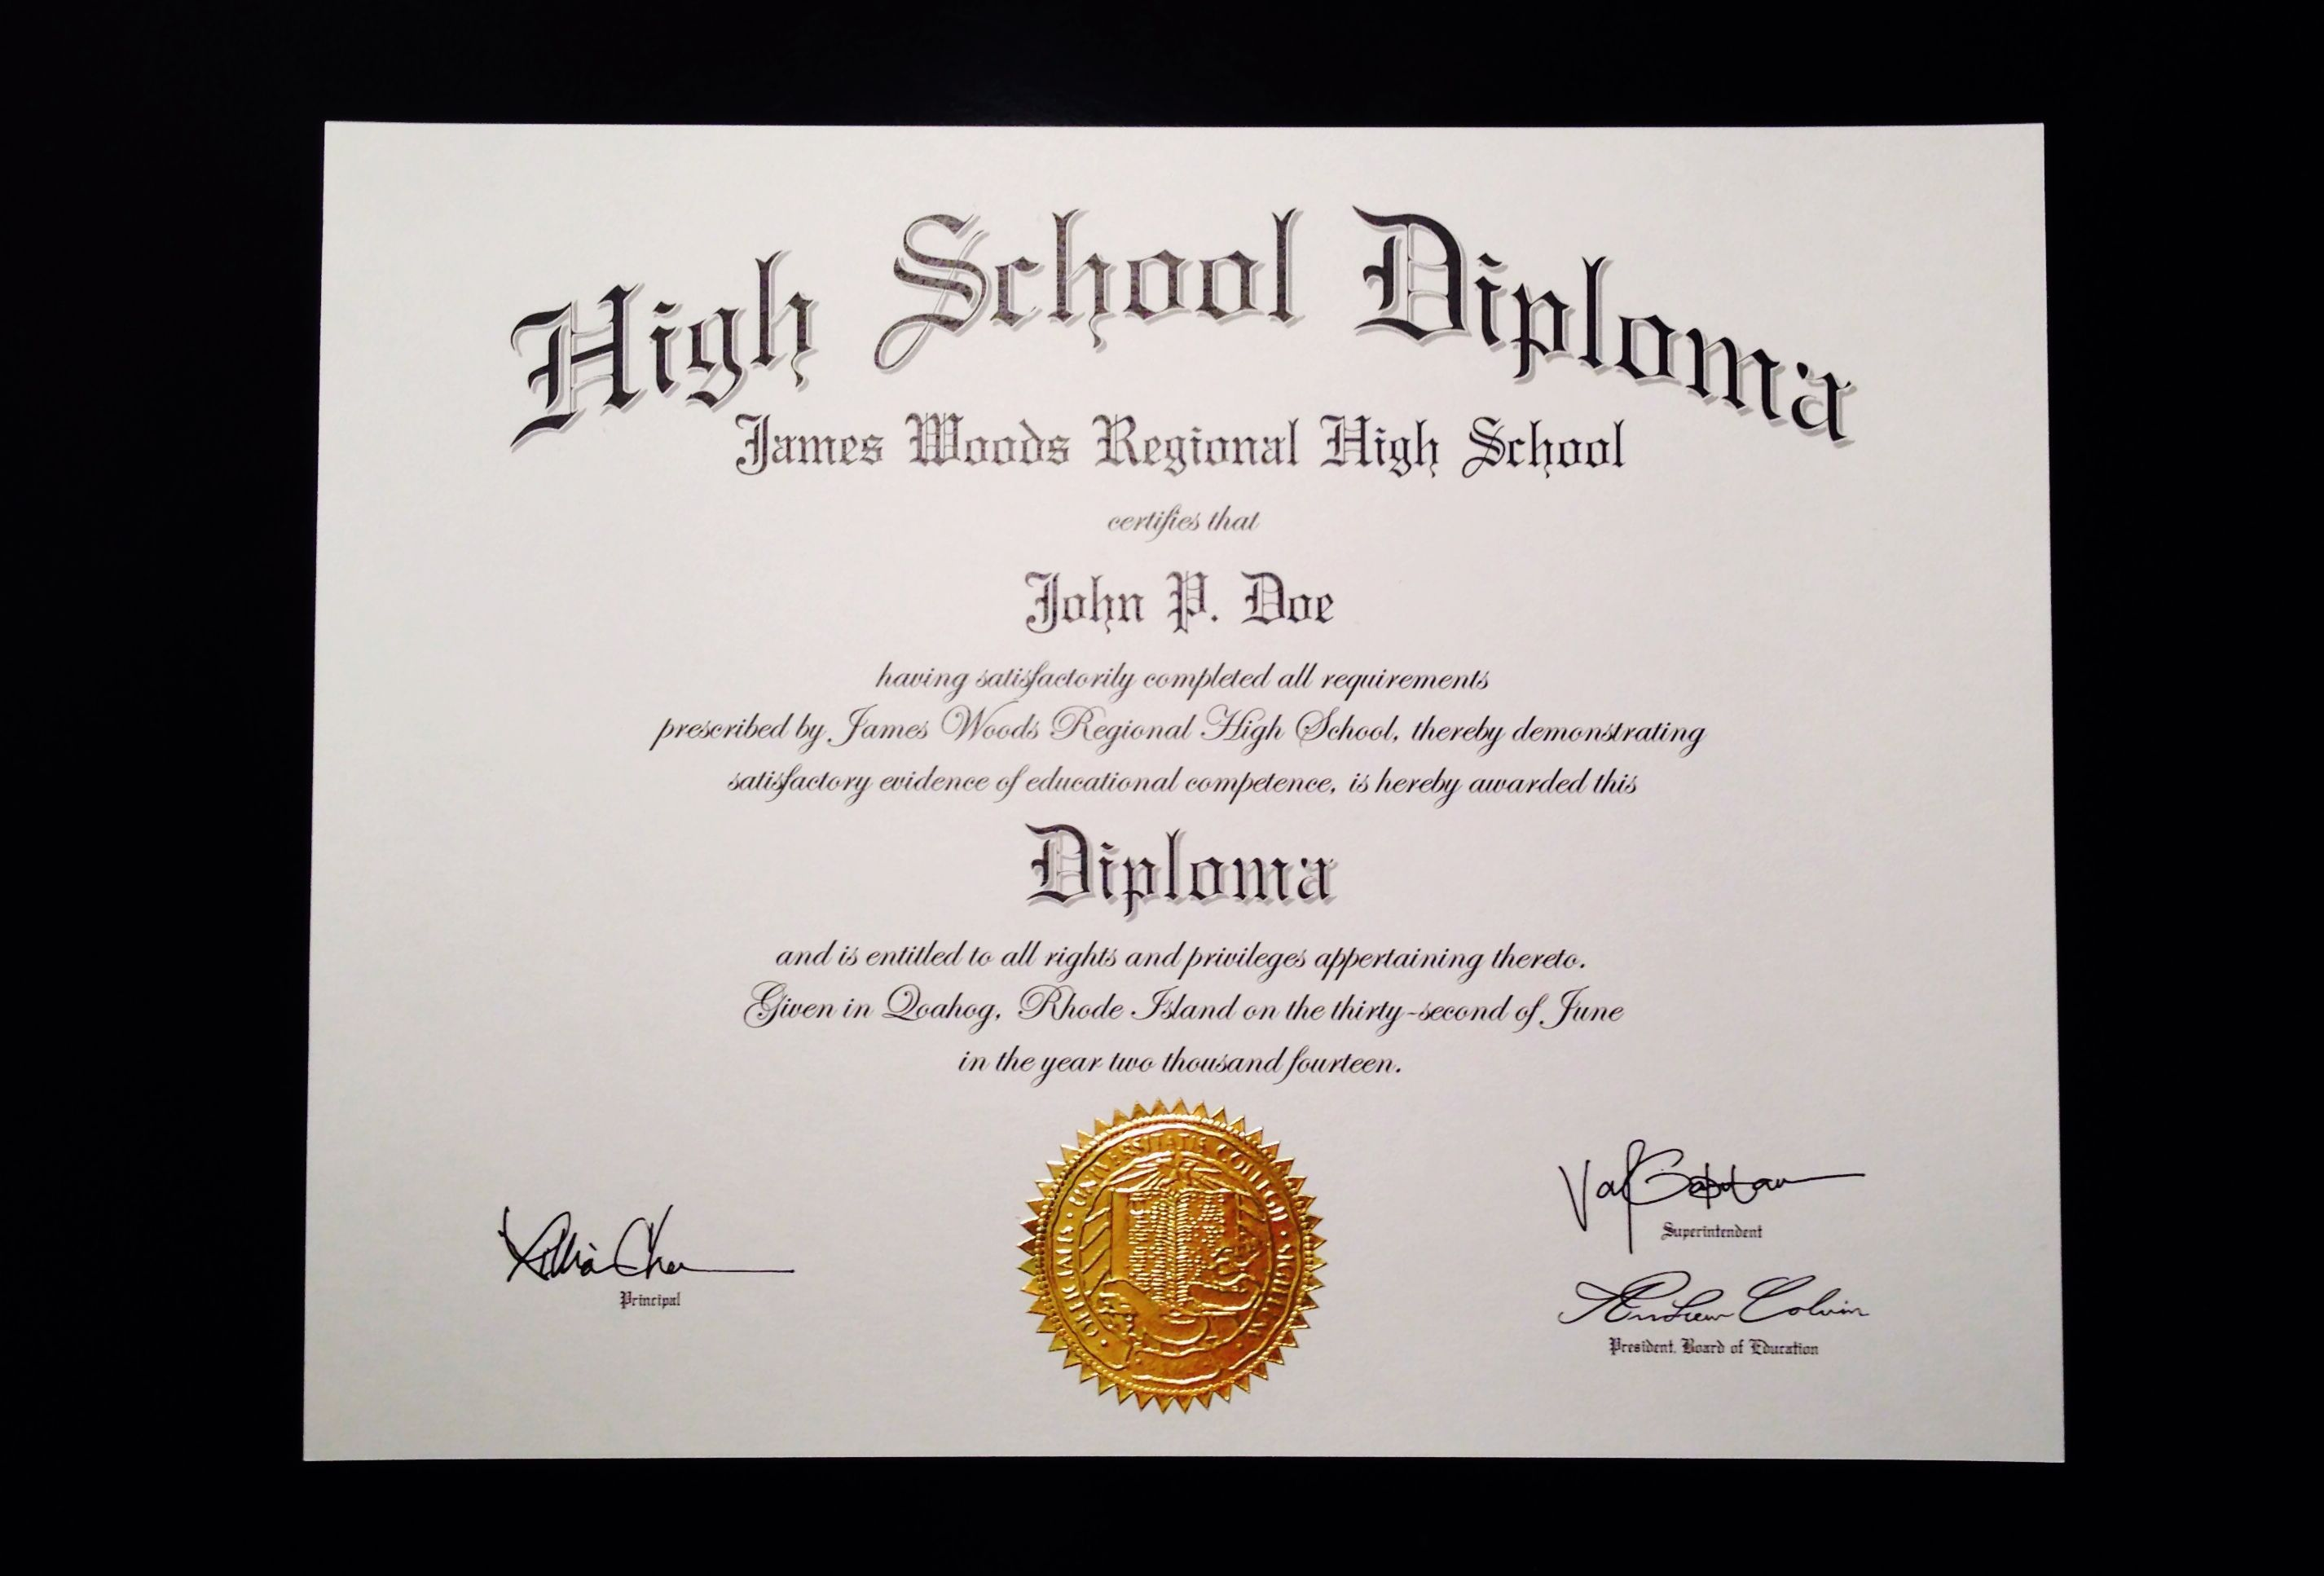 002 Unforgettable Free Printable High School Diploma Template Def  With SealFull